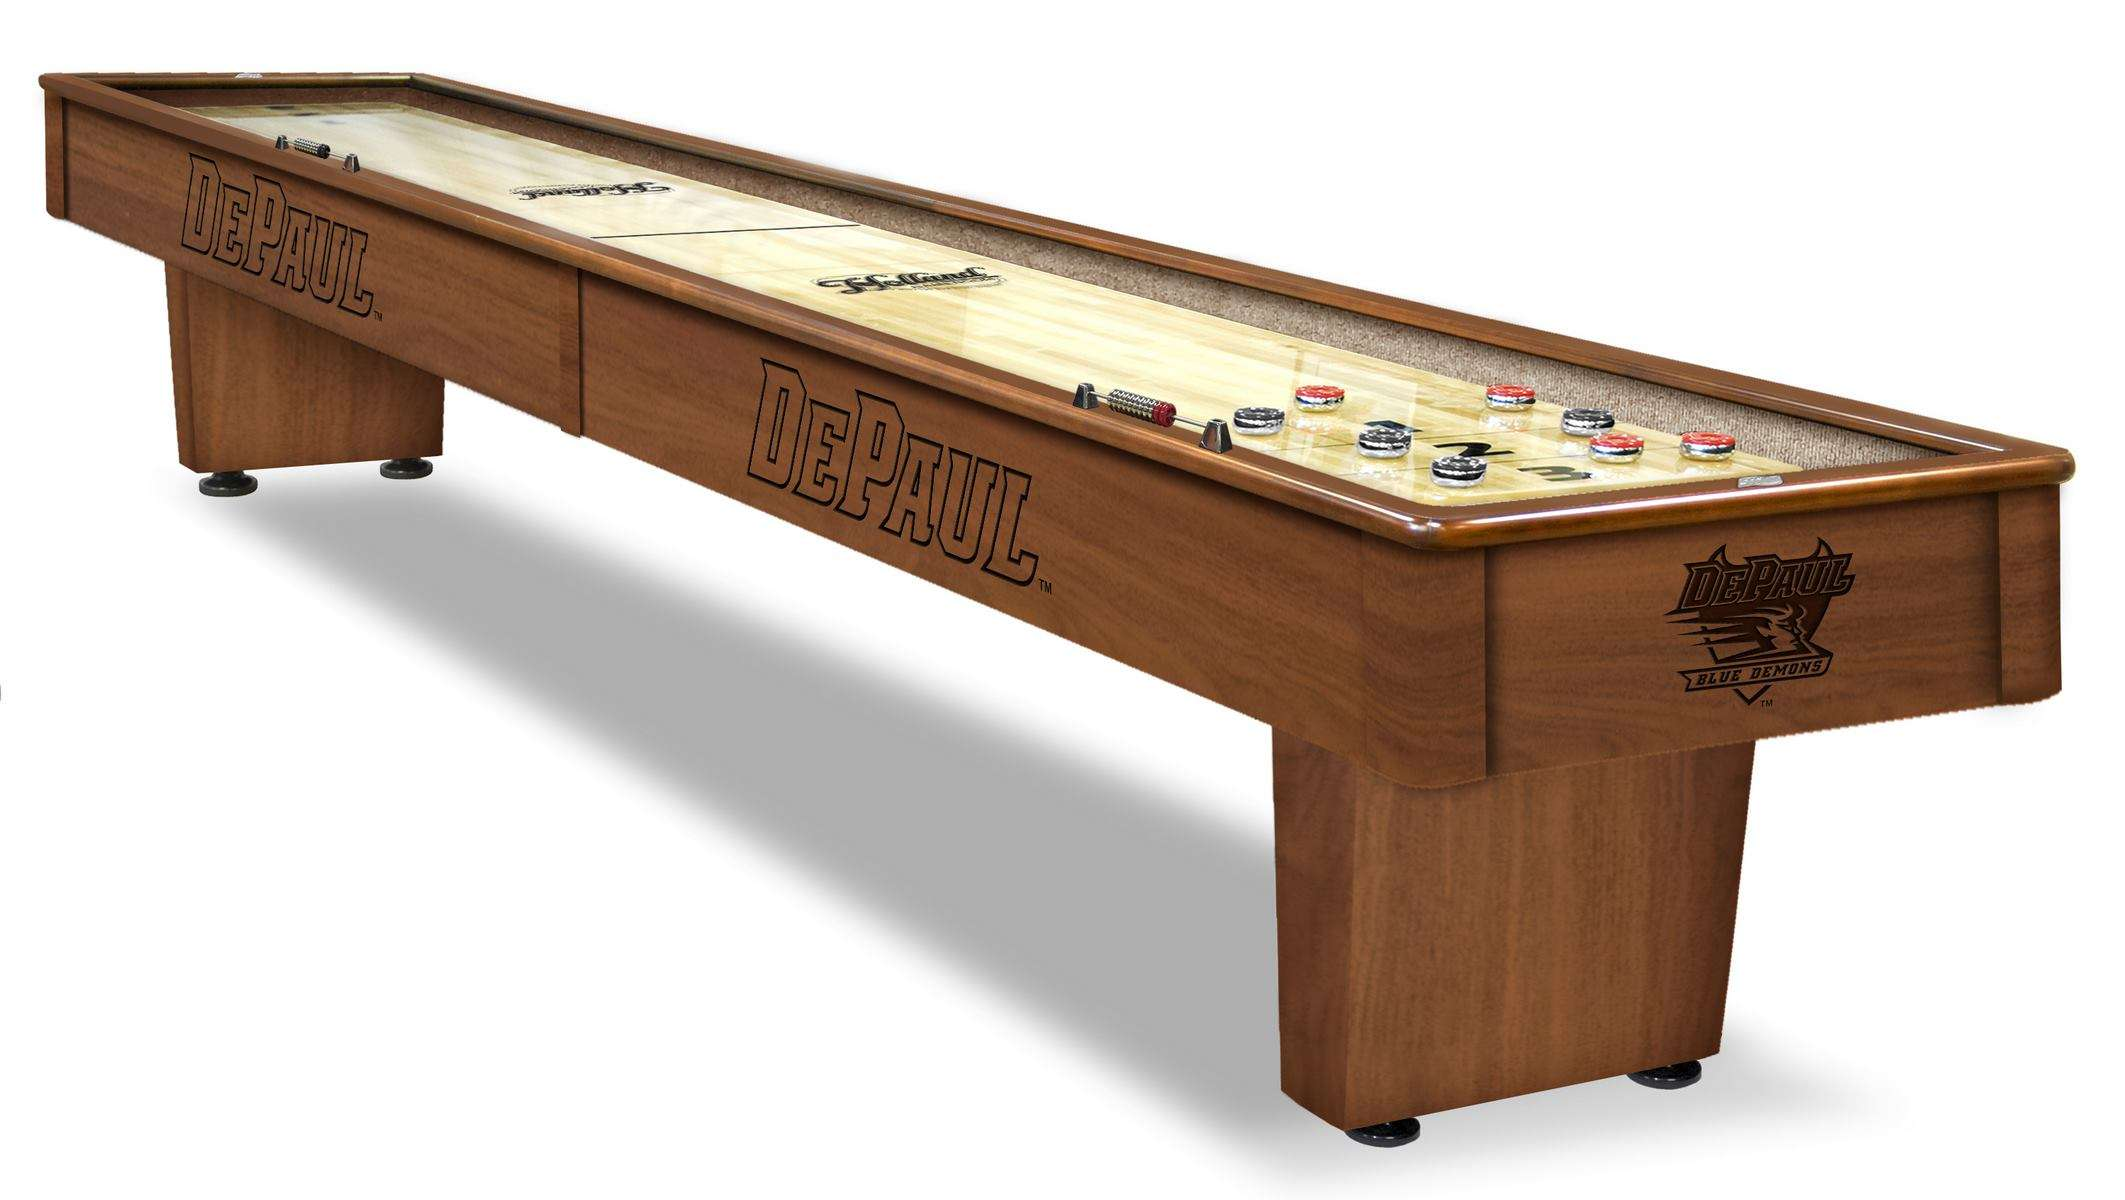 12' DePaul University Shuffleboard Table in Chardonnay Finish